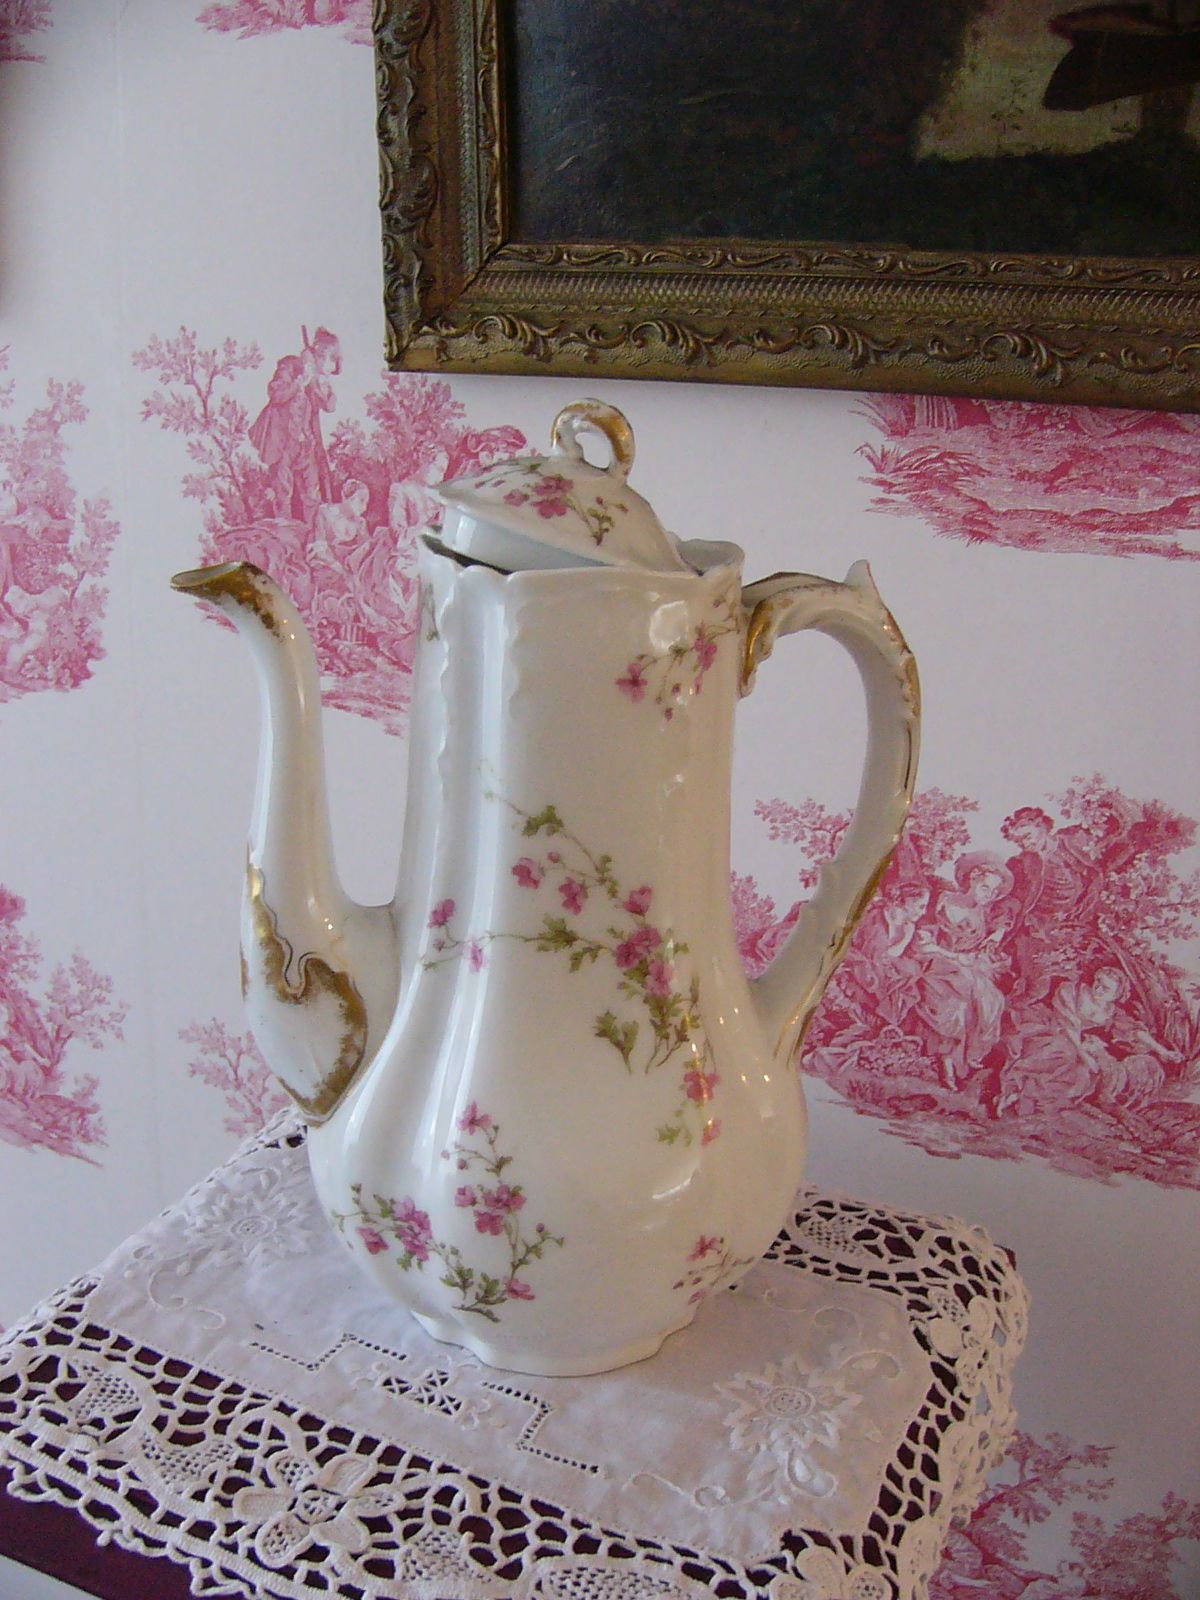 teapot flower vase of haviland limoges charles bailly flowers all things tea pinterest within tea cup a· haviland limoges charles bailly flowers